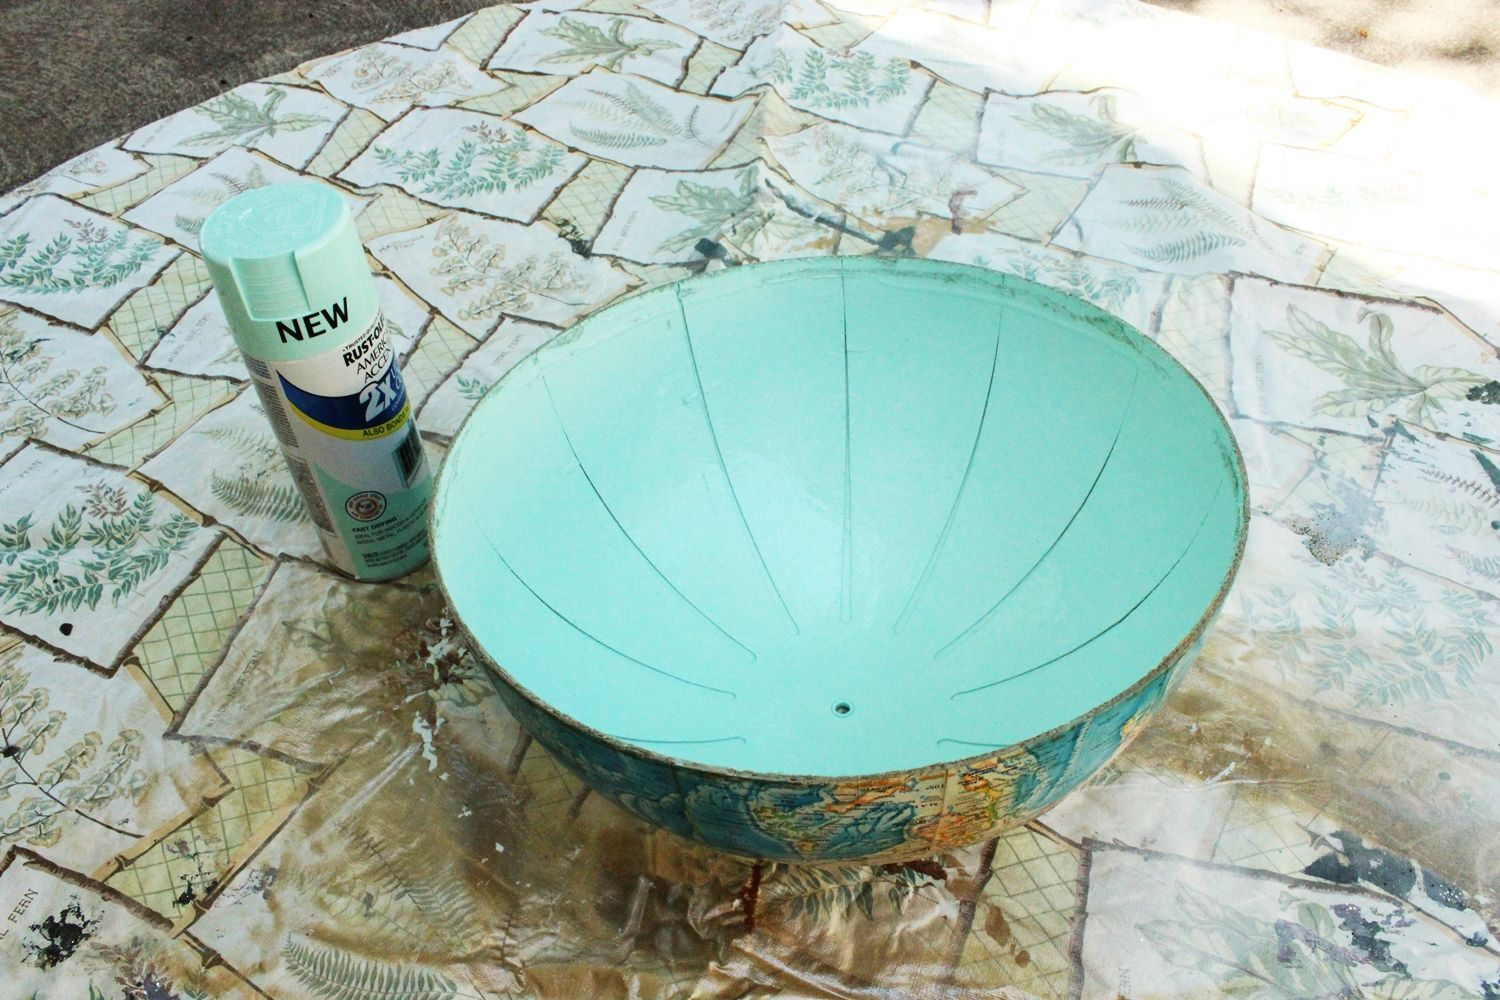 Globe after spray paint